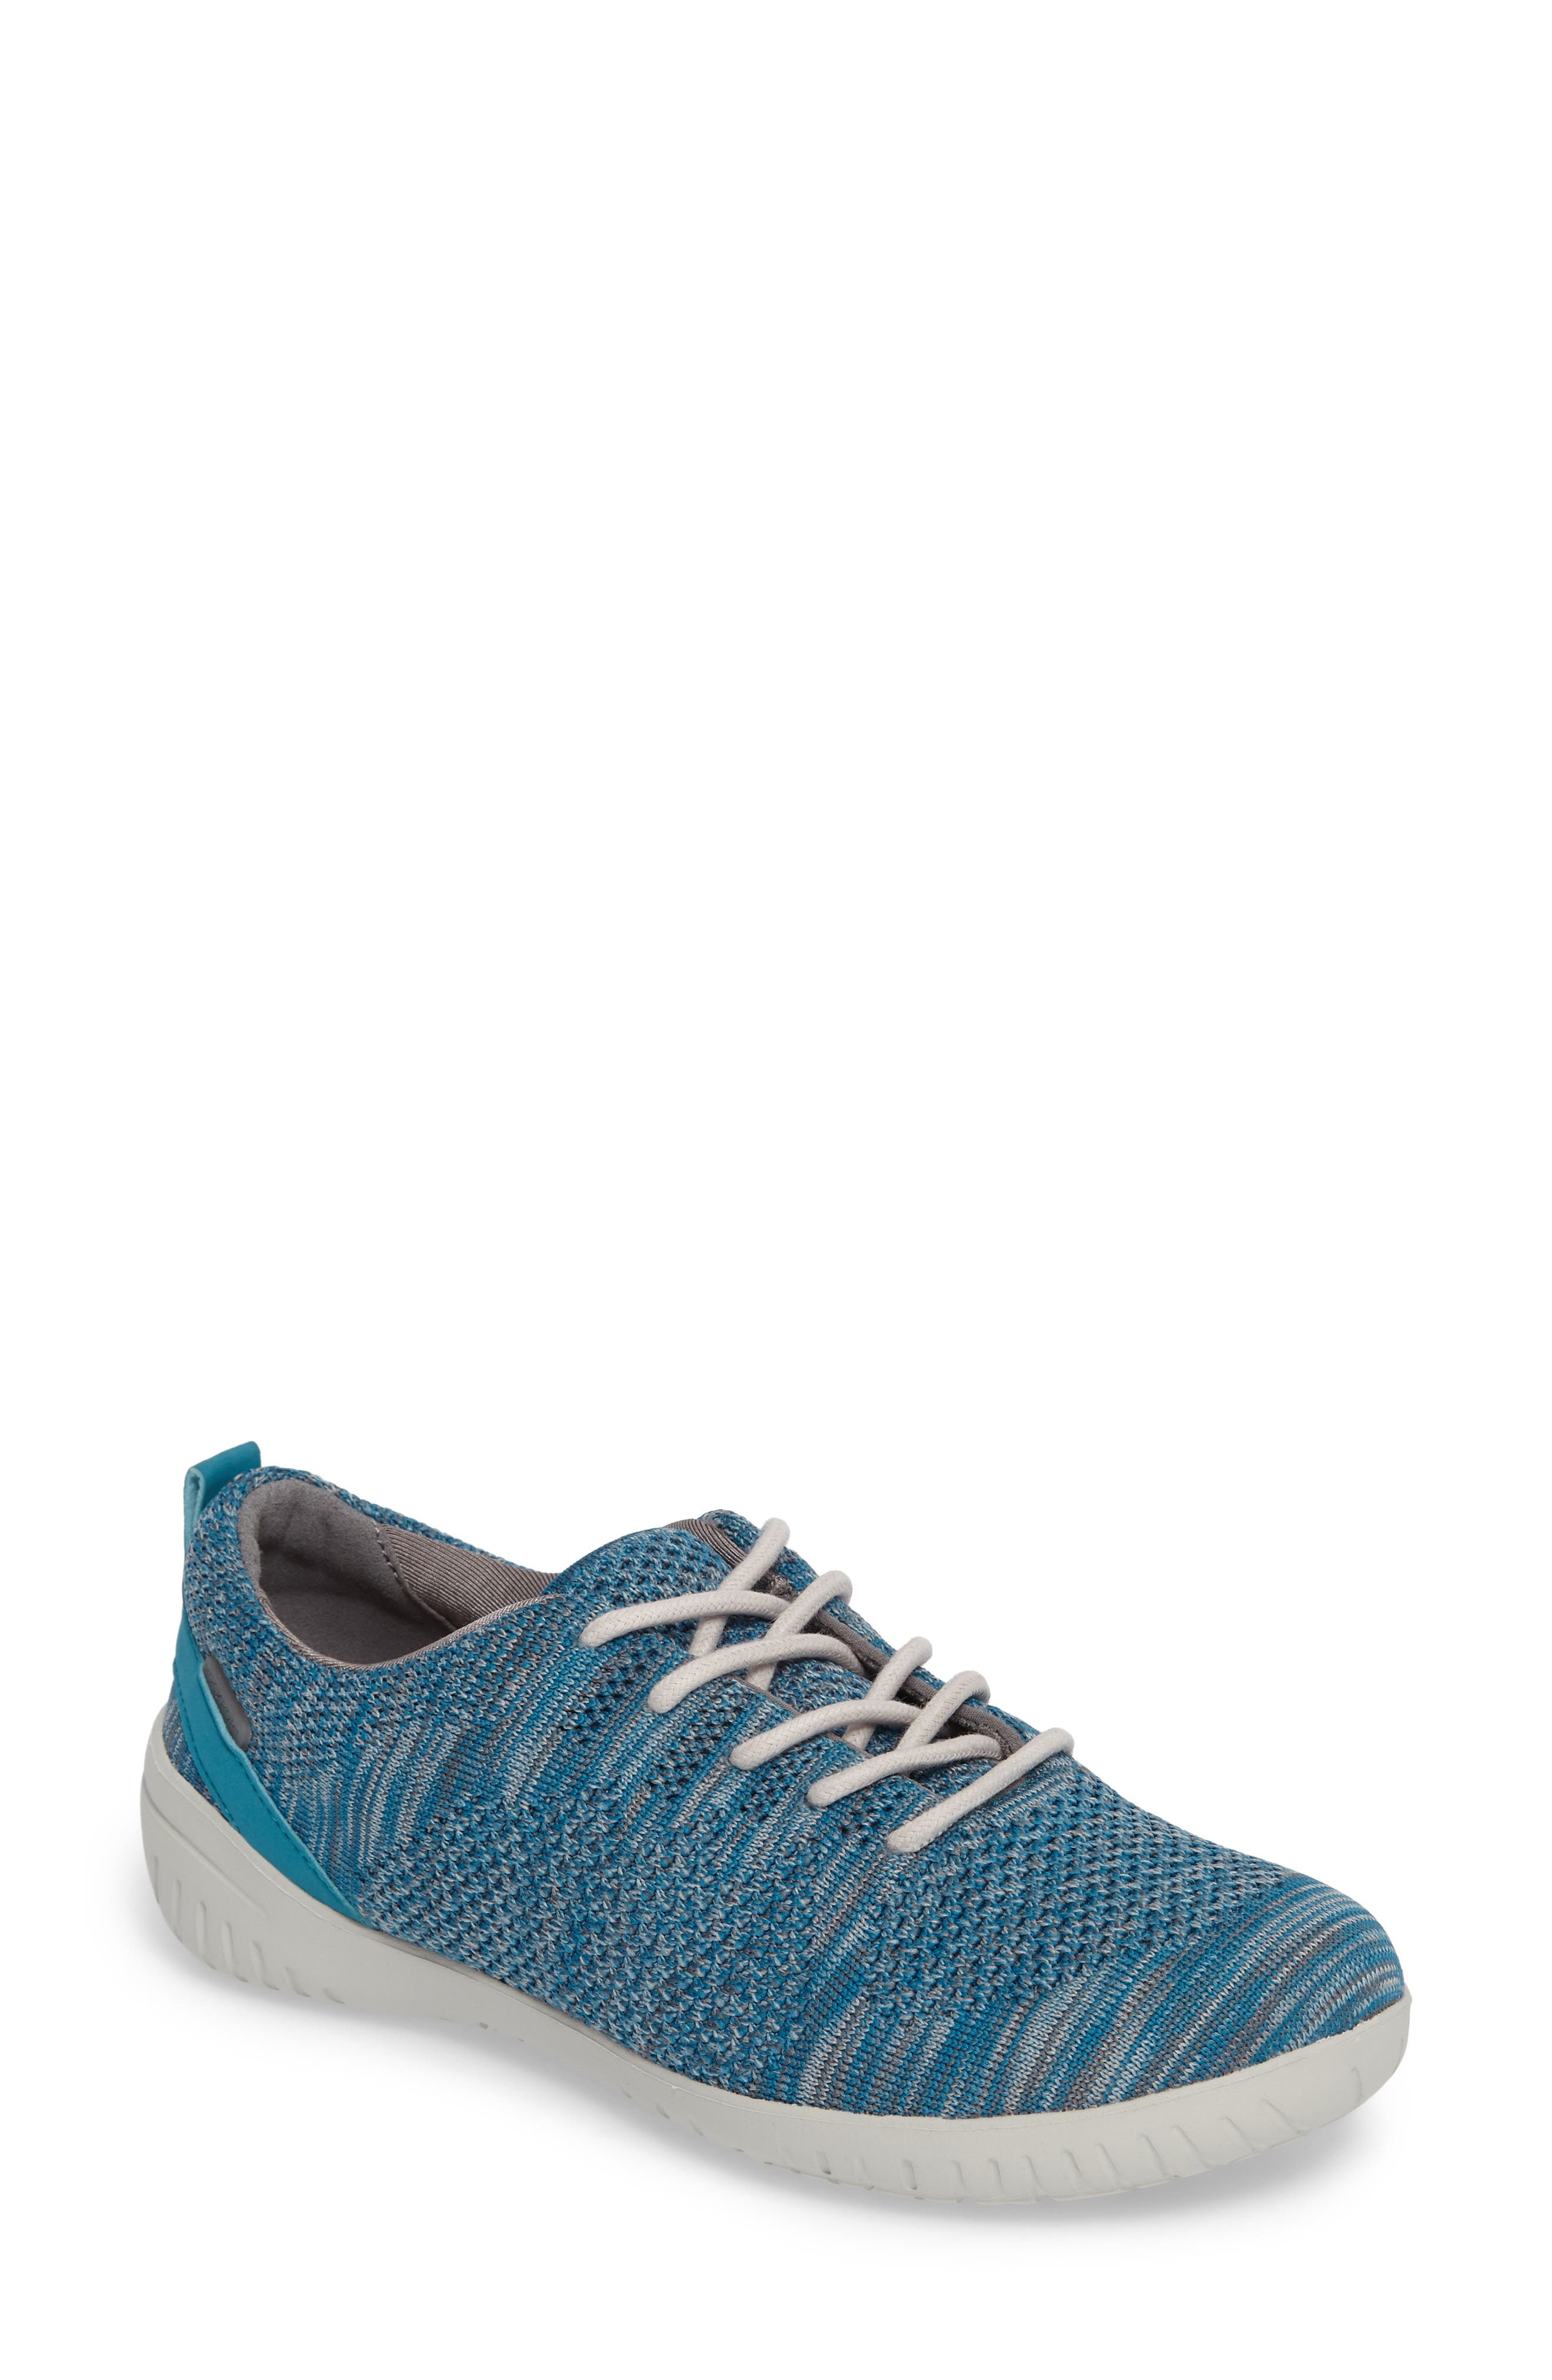 Rockport Raelyn Knit Sneaker (Women)